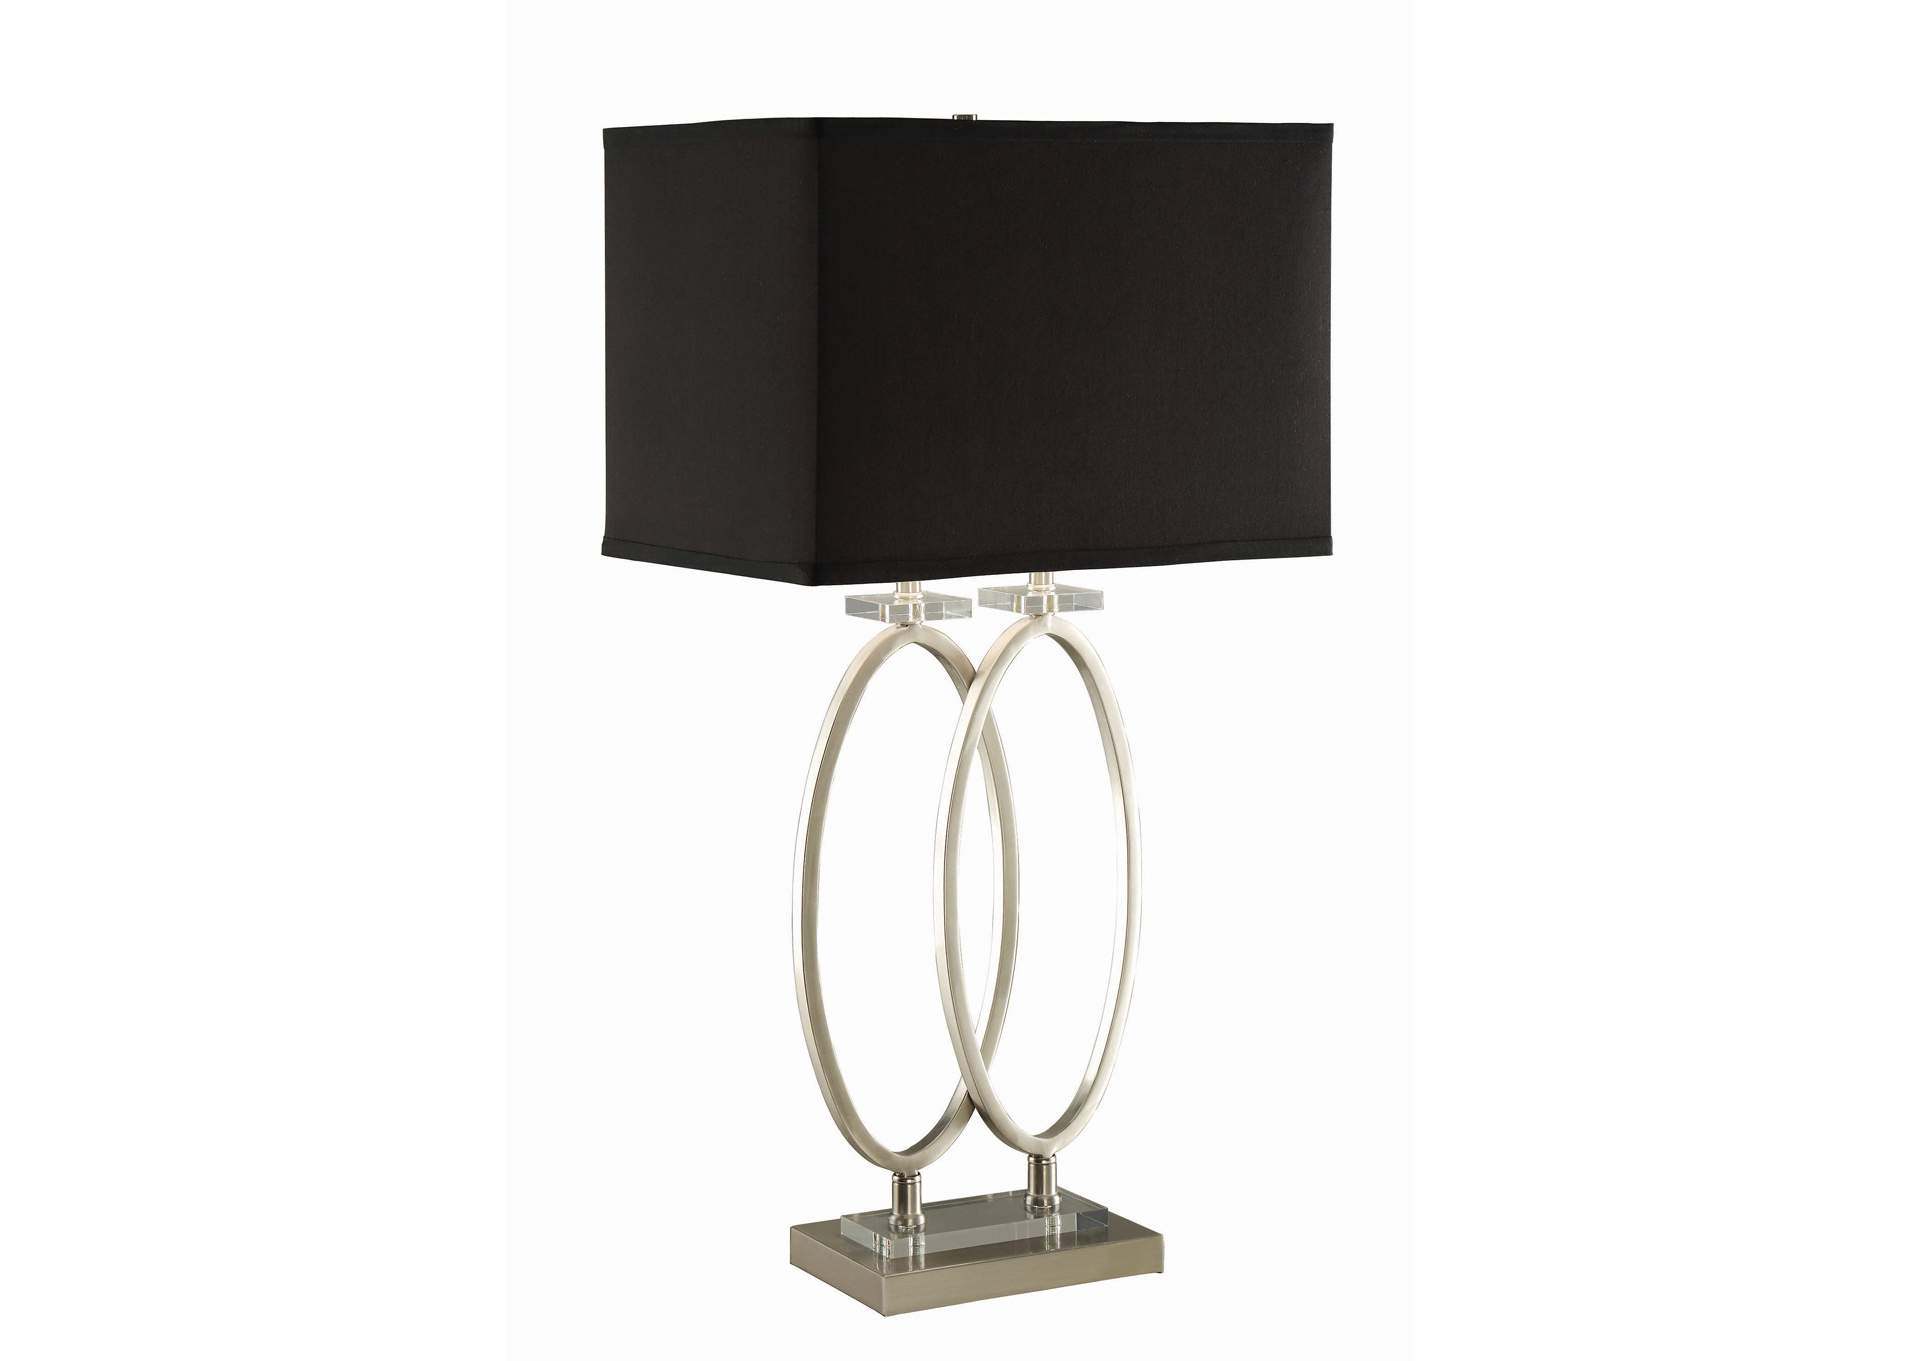 Nickel Transitional Nickel and Black Accent Lamp,Coaster Furniture